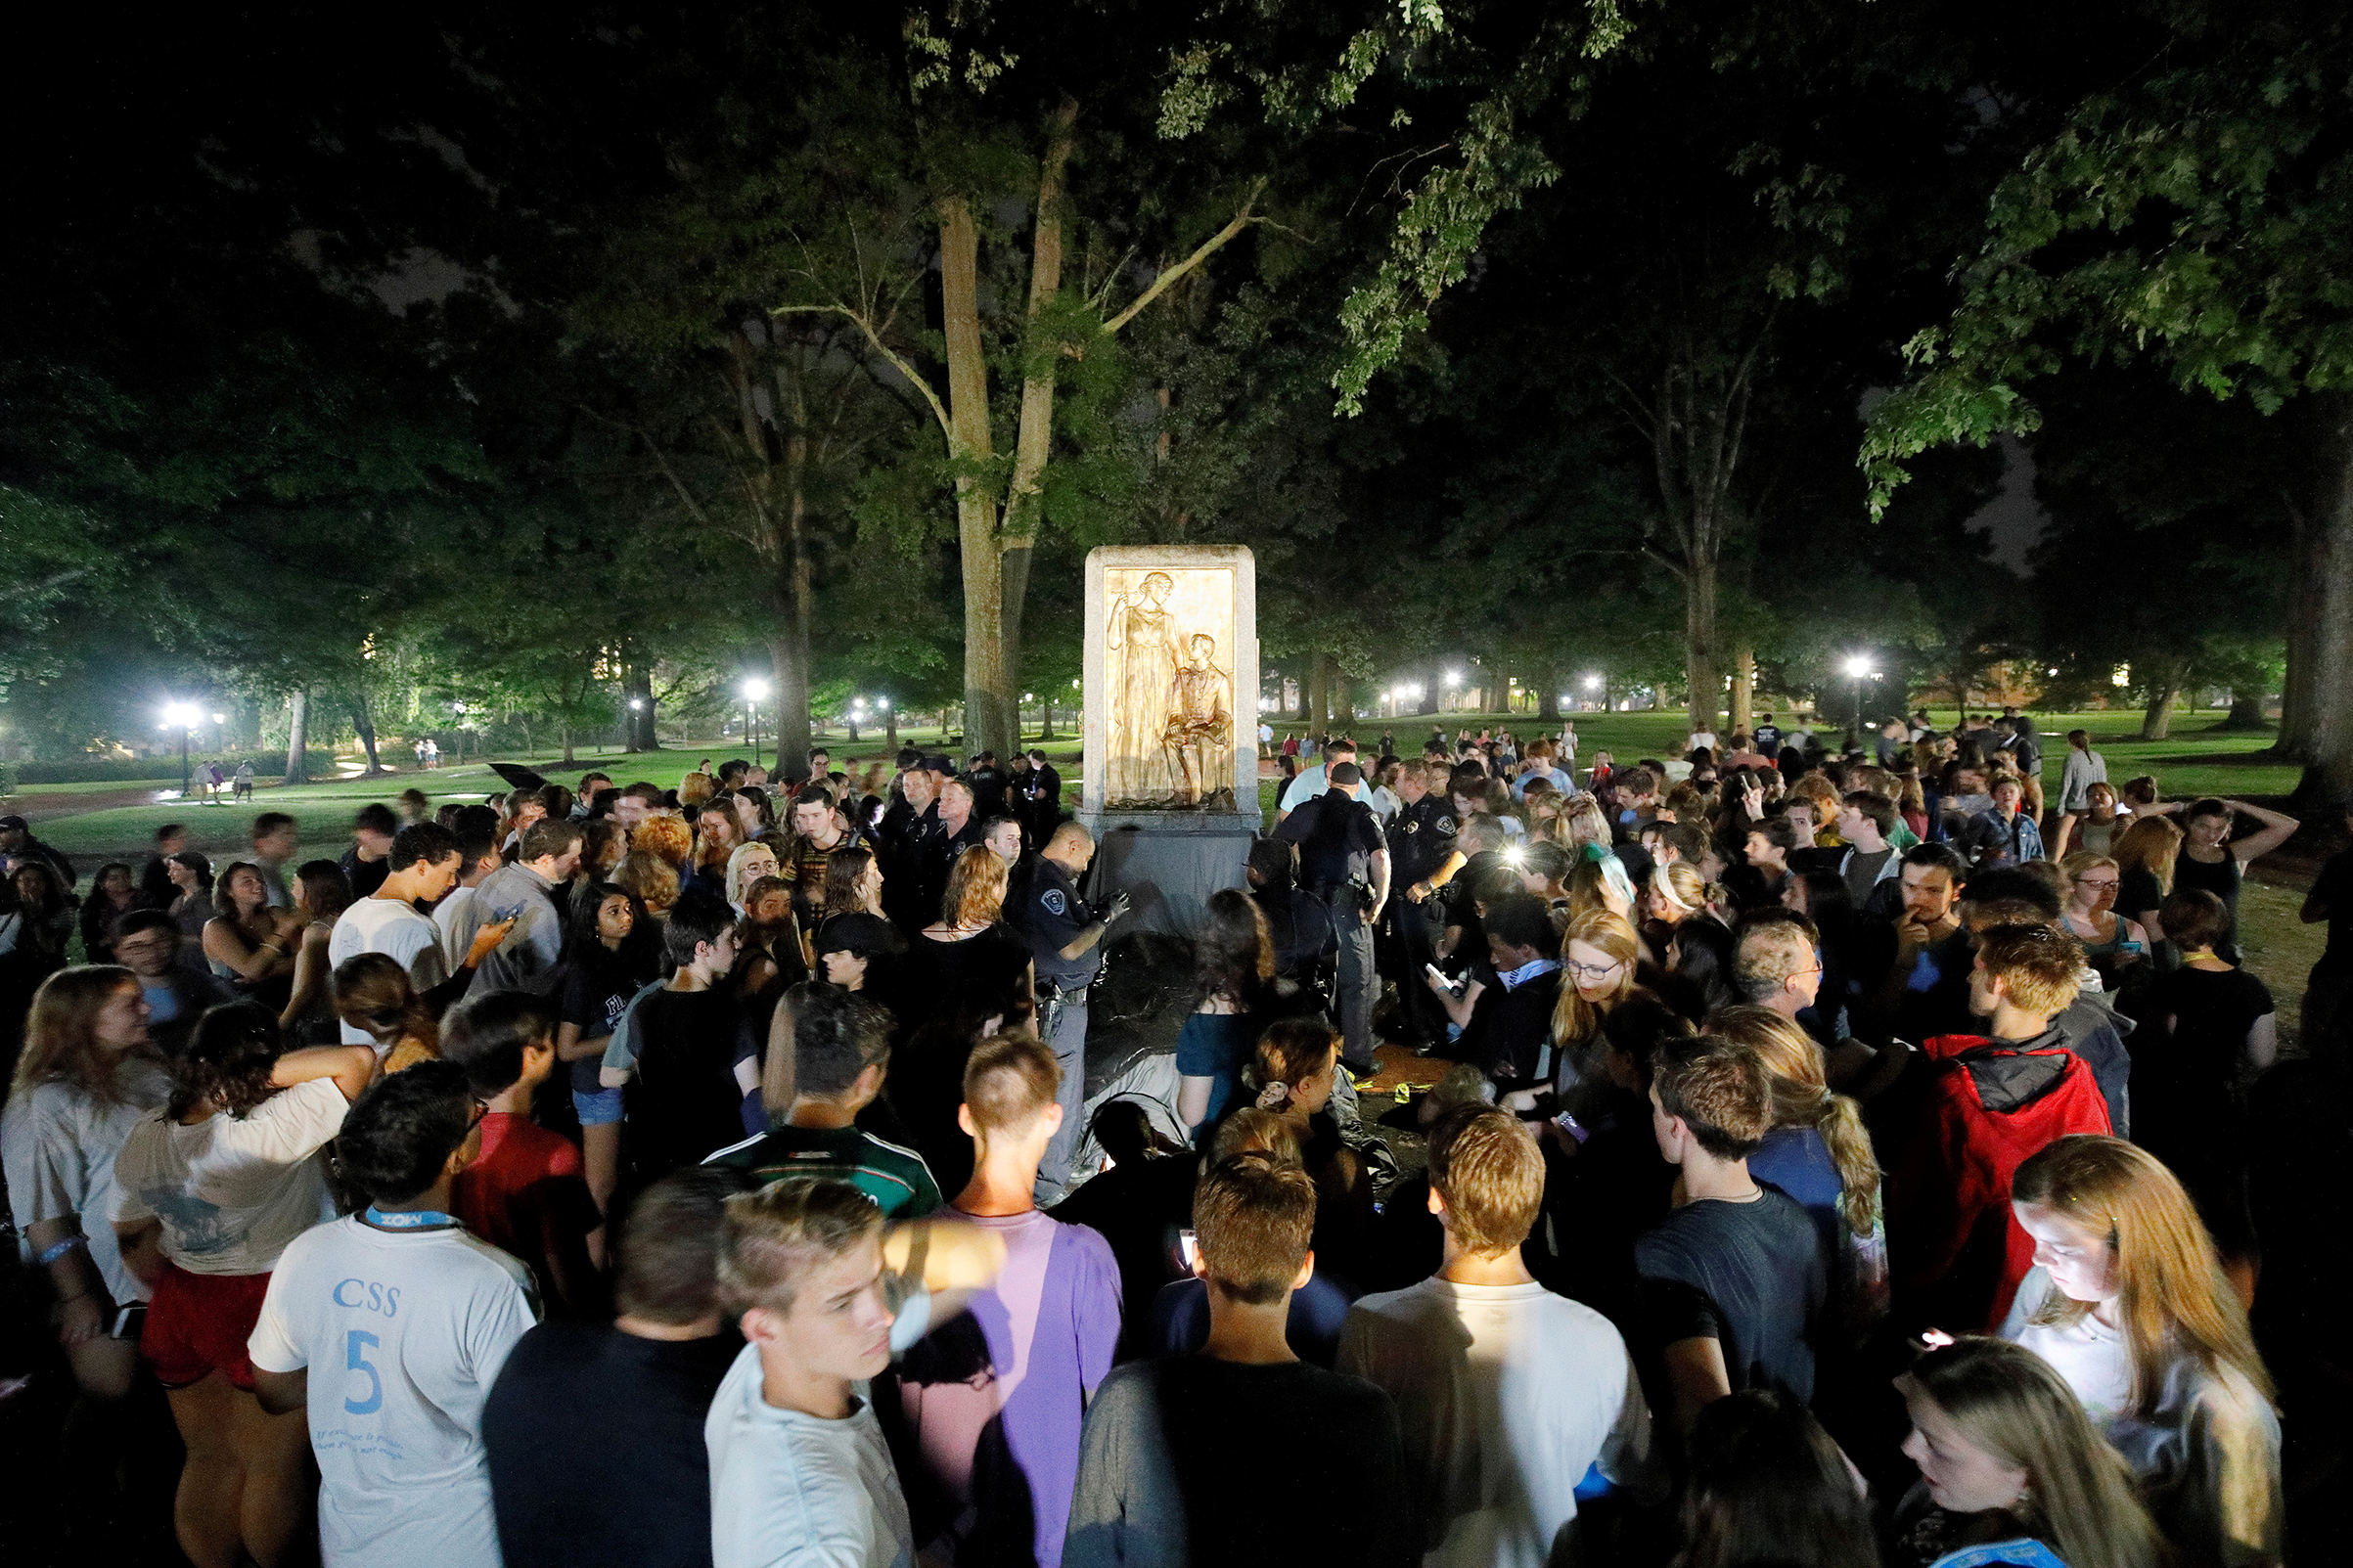 Students and protesters surround the plinth where the toppled statue of a Confederate soldier nicknamed Silent Sam once stood on the University of North Carolina campus, after a demonstration for its removal in Chapel Hill, North Carolina, on Aug. 20, 2018.